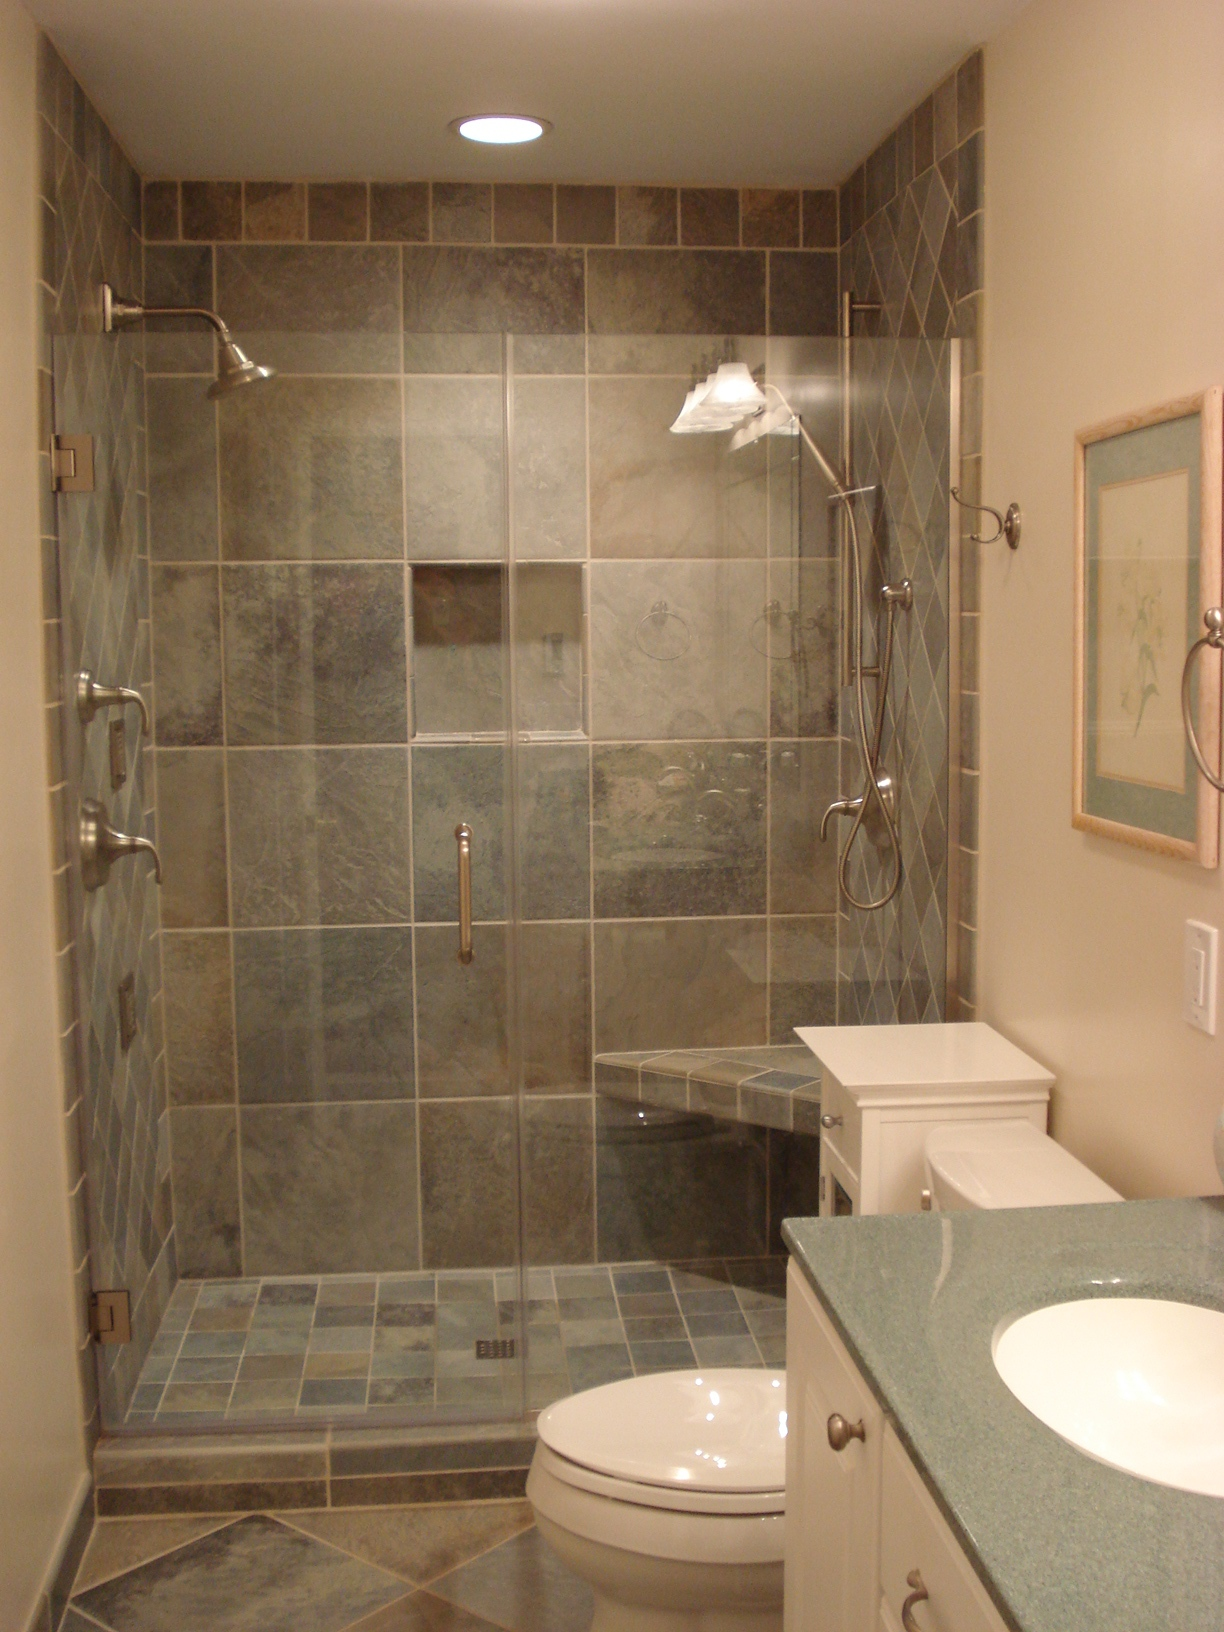 Lifetime design build inc completed projects for Bathroom redesign images